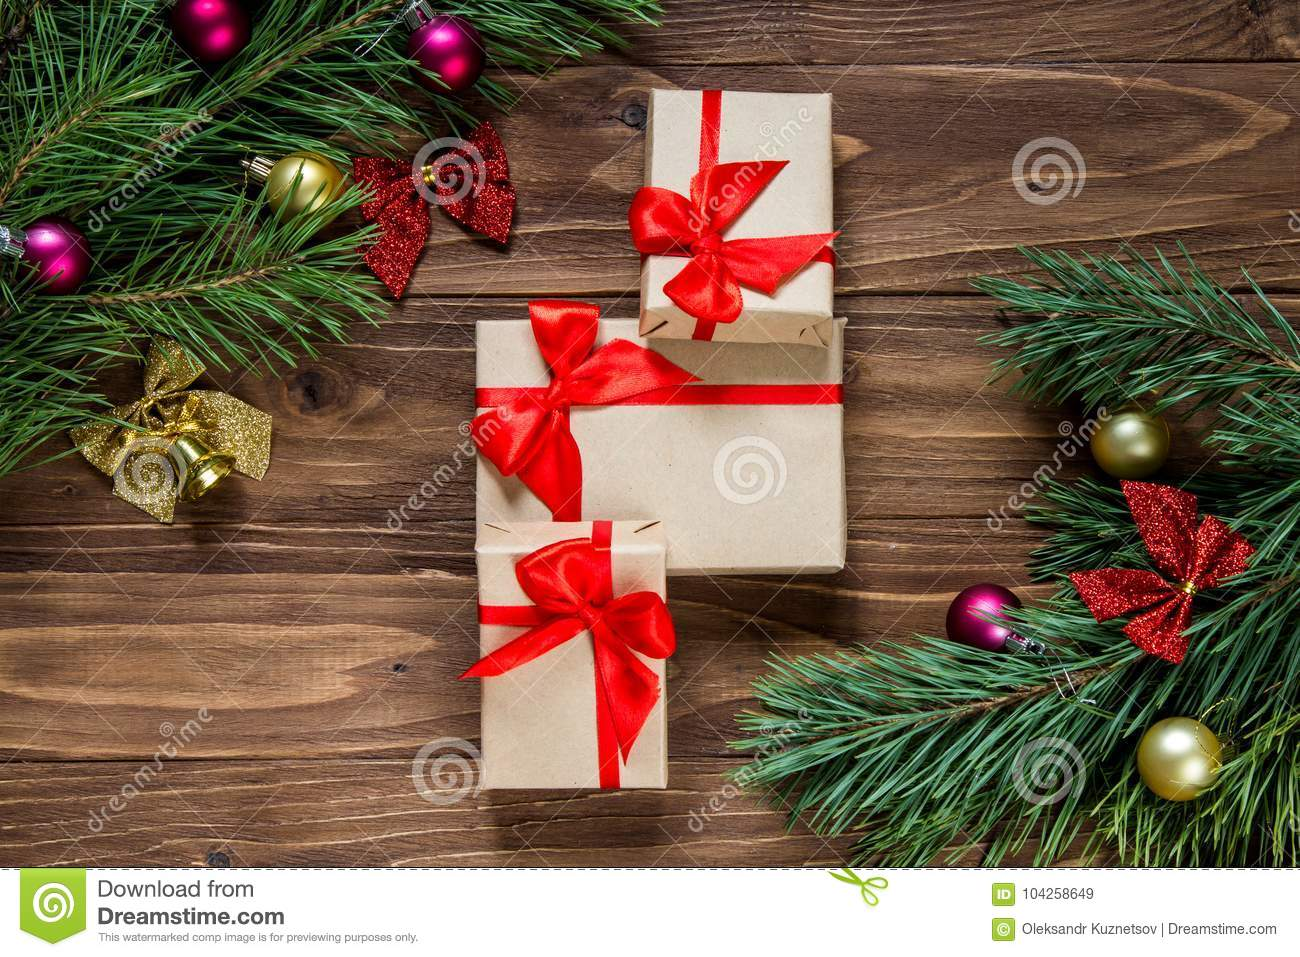 download nice christmas gifts exposition with pine tree tinsel in the middle of the wooden background - Nice Christmas Gifts